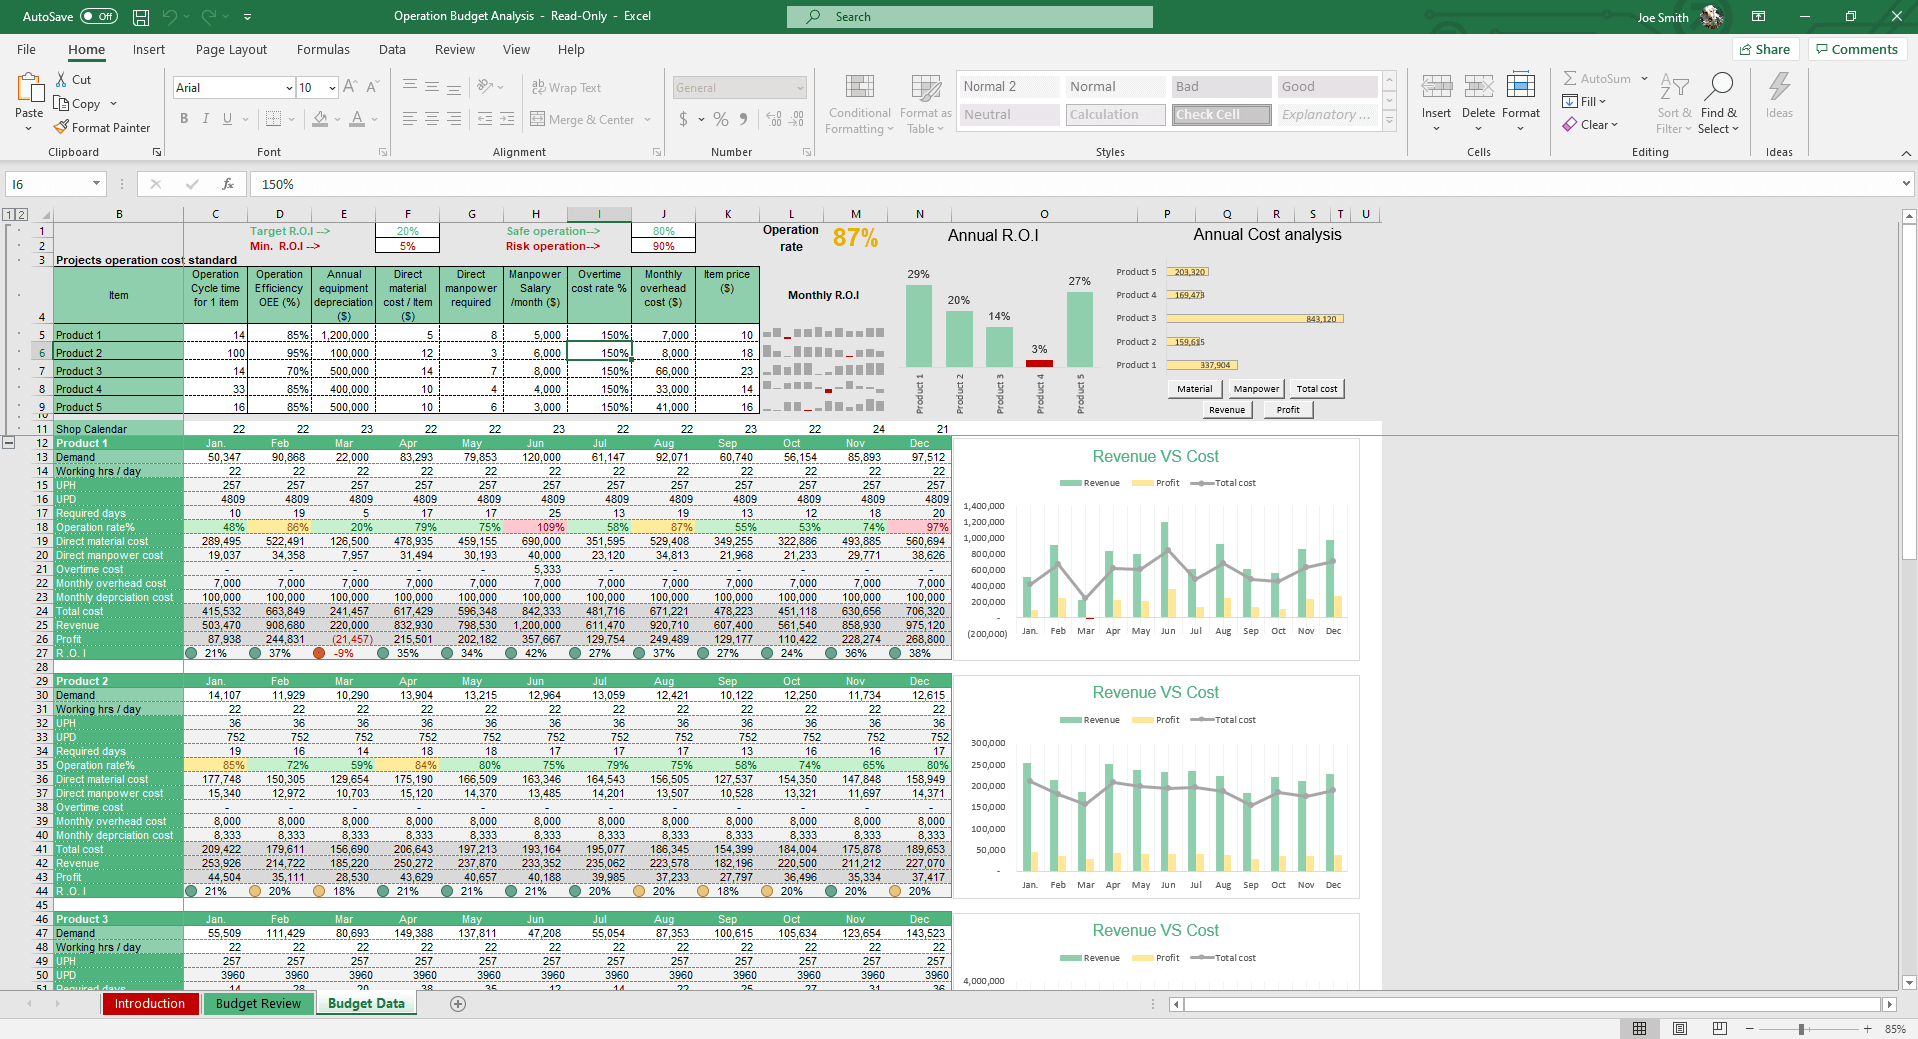 The Budget Review sheet displays graphs, visuals and charts according to your ROI, costs and operating efficiency